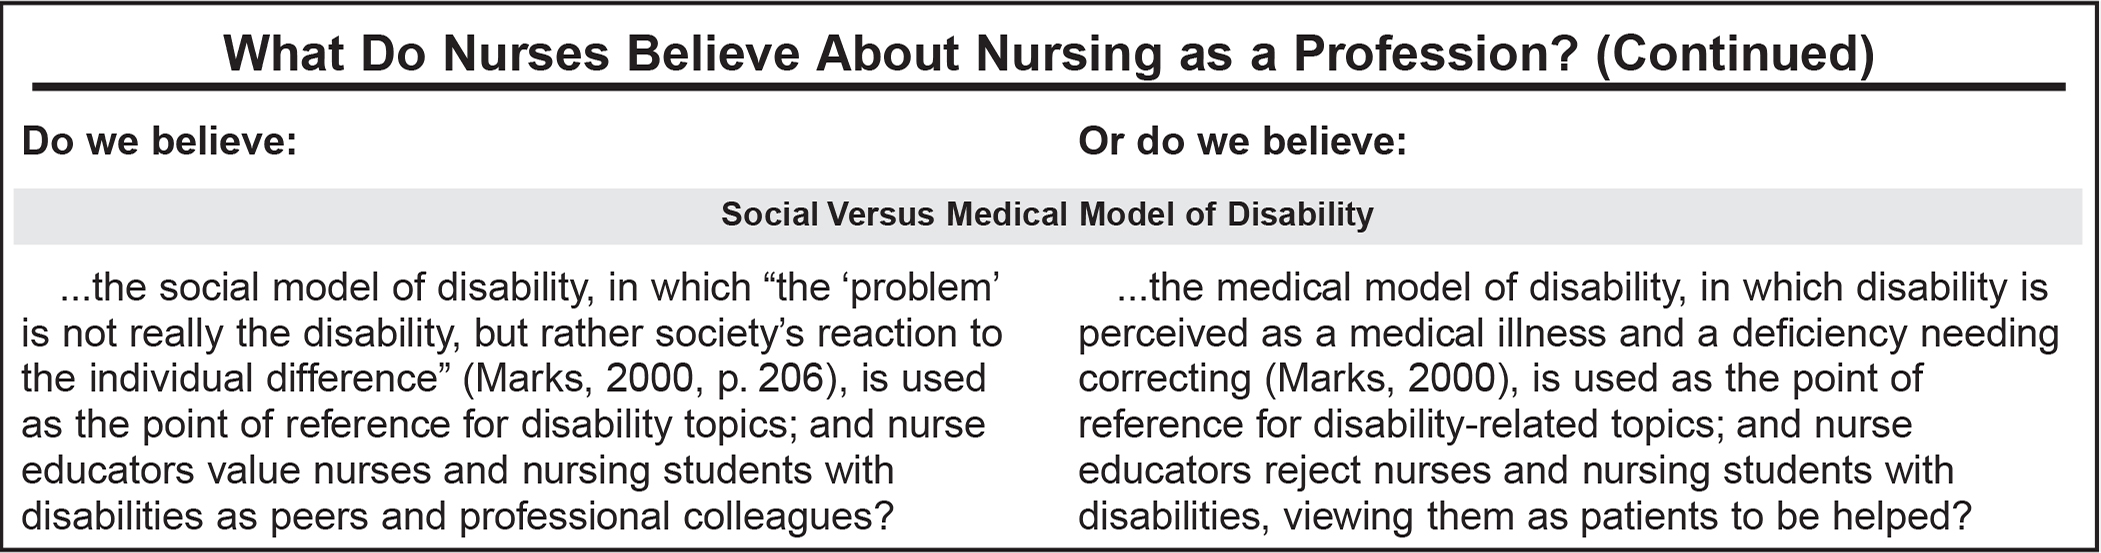 medical and social models of disability pdf